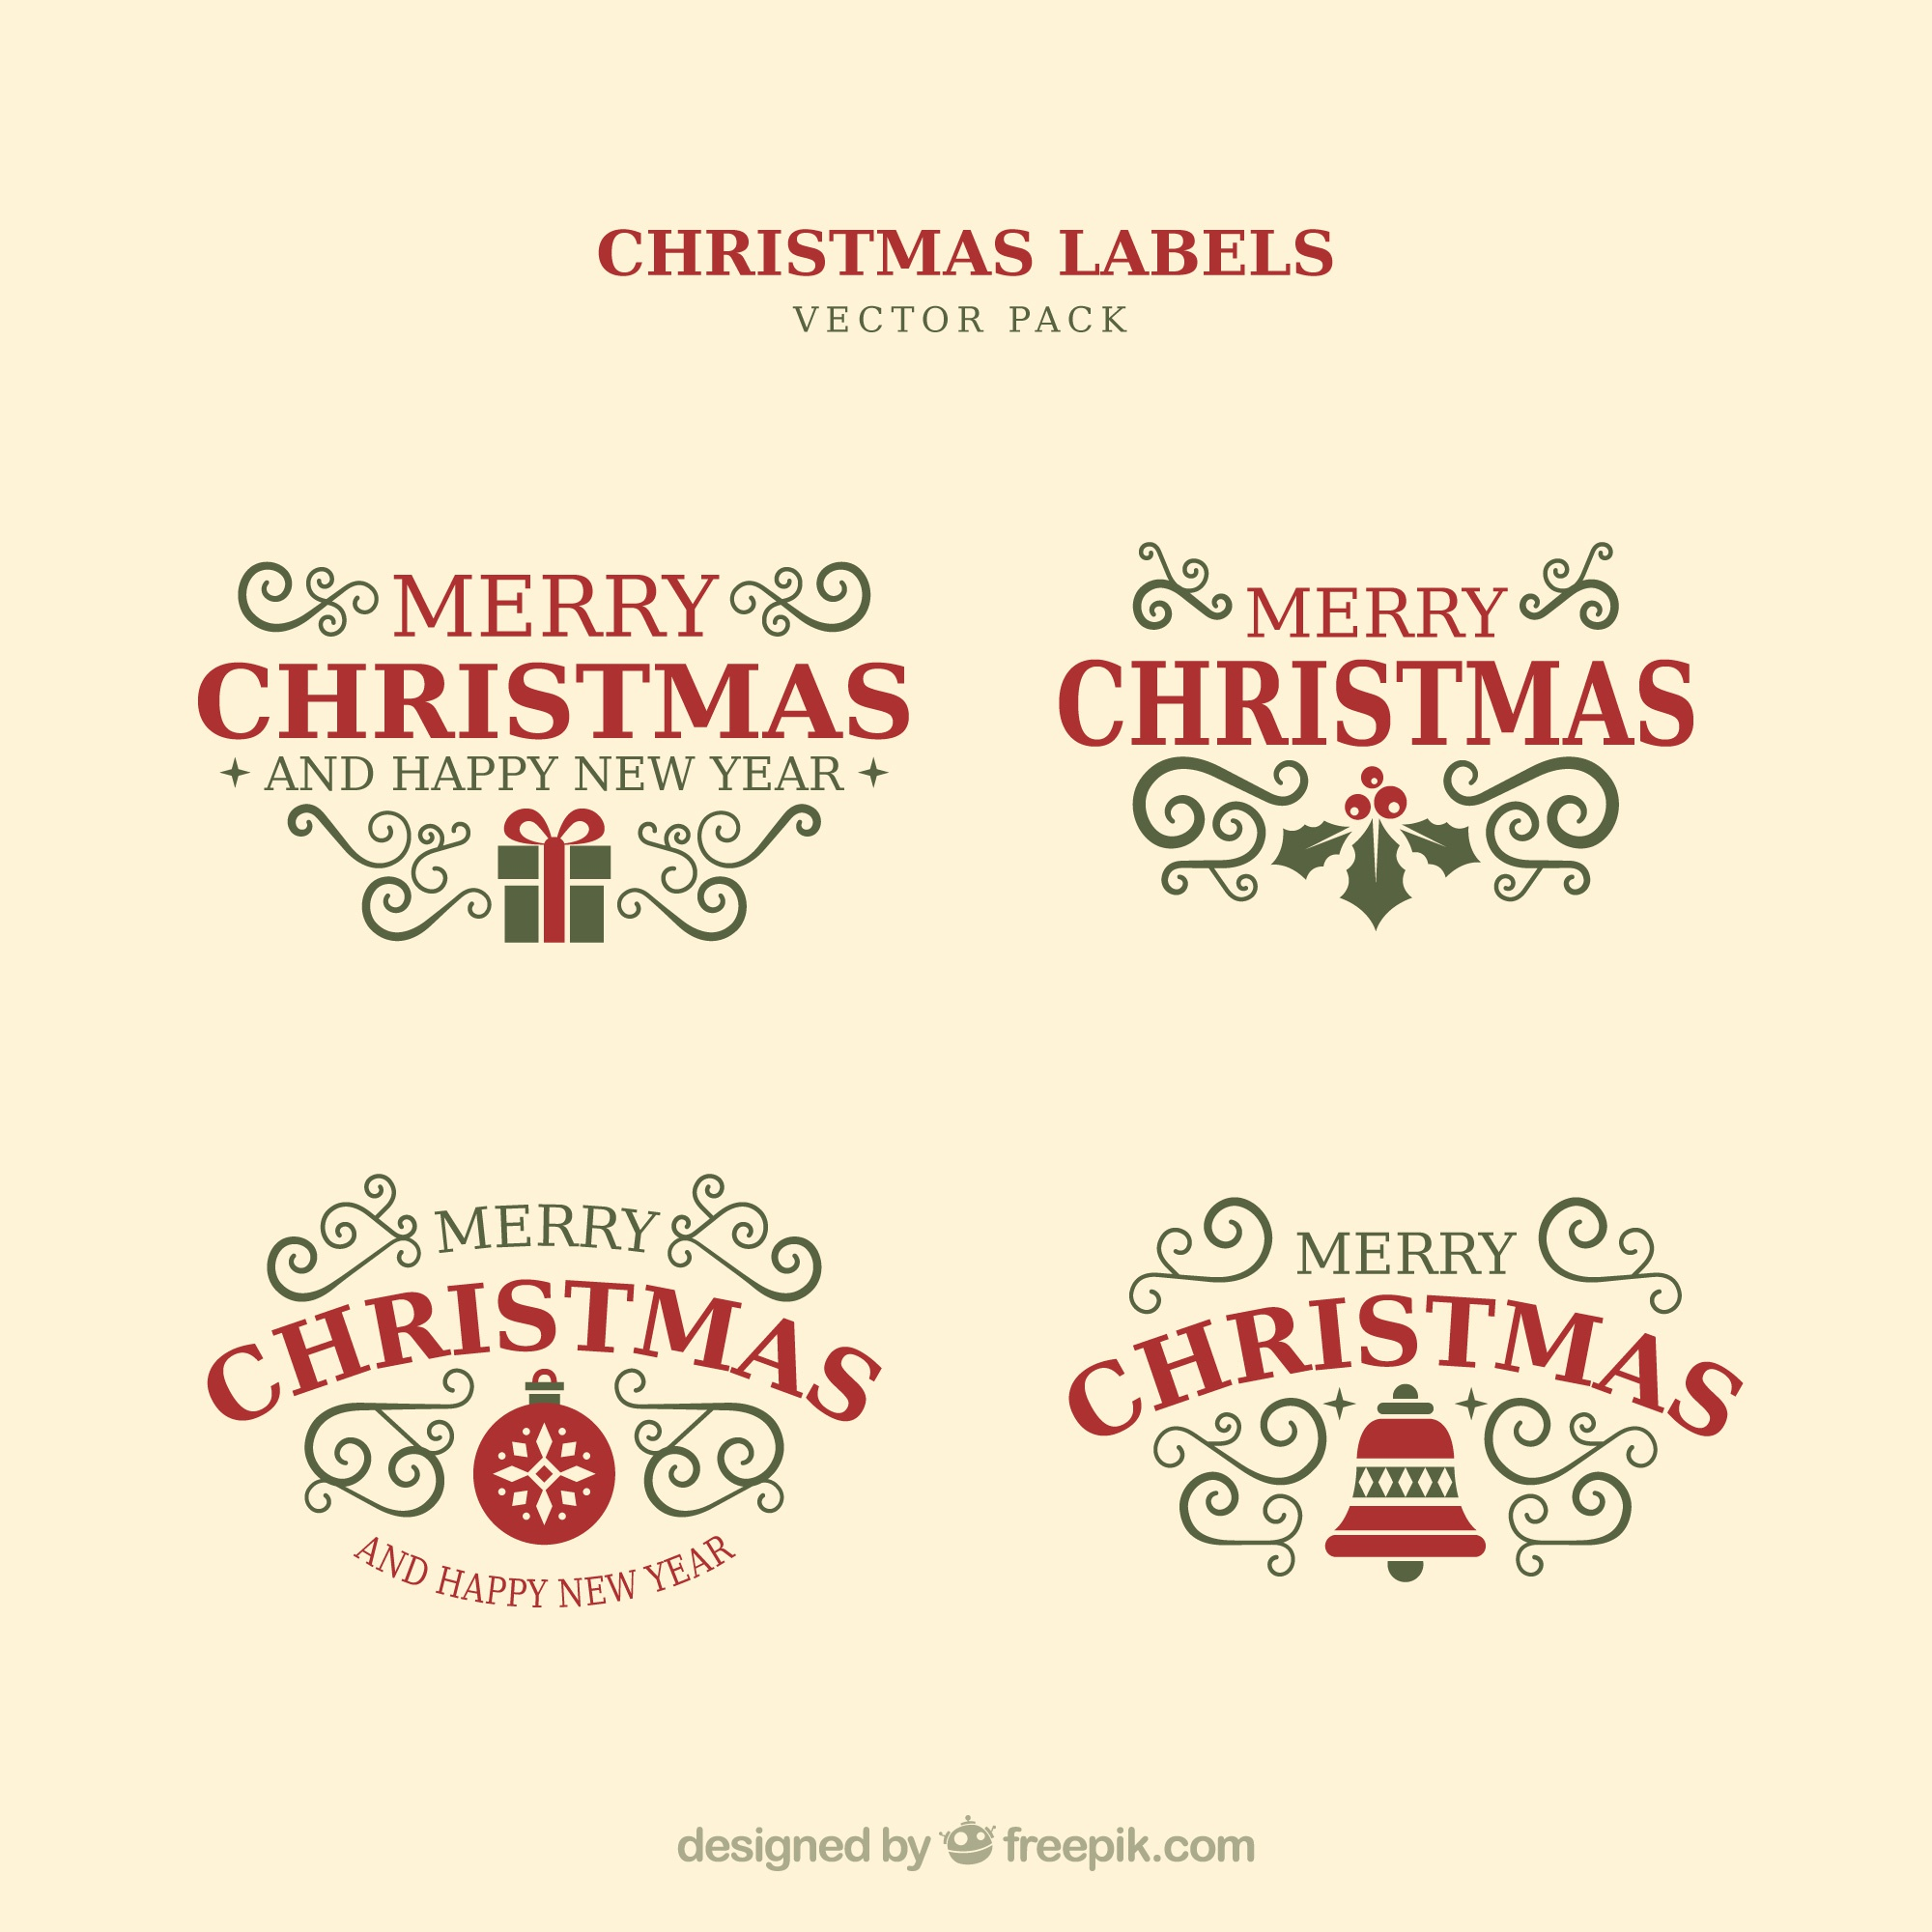 Christmas typographic elements, vintage labels and ribbons